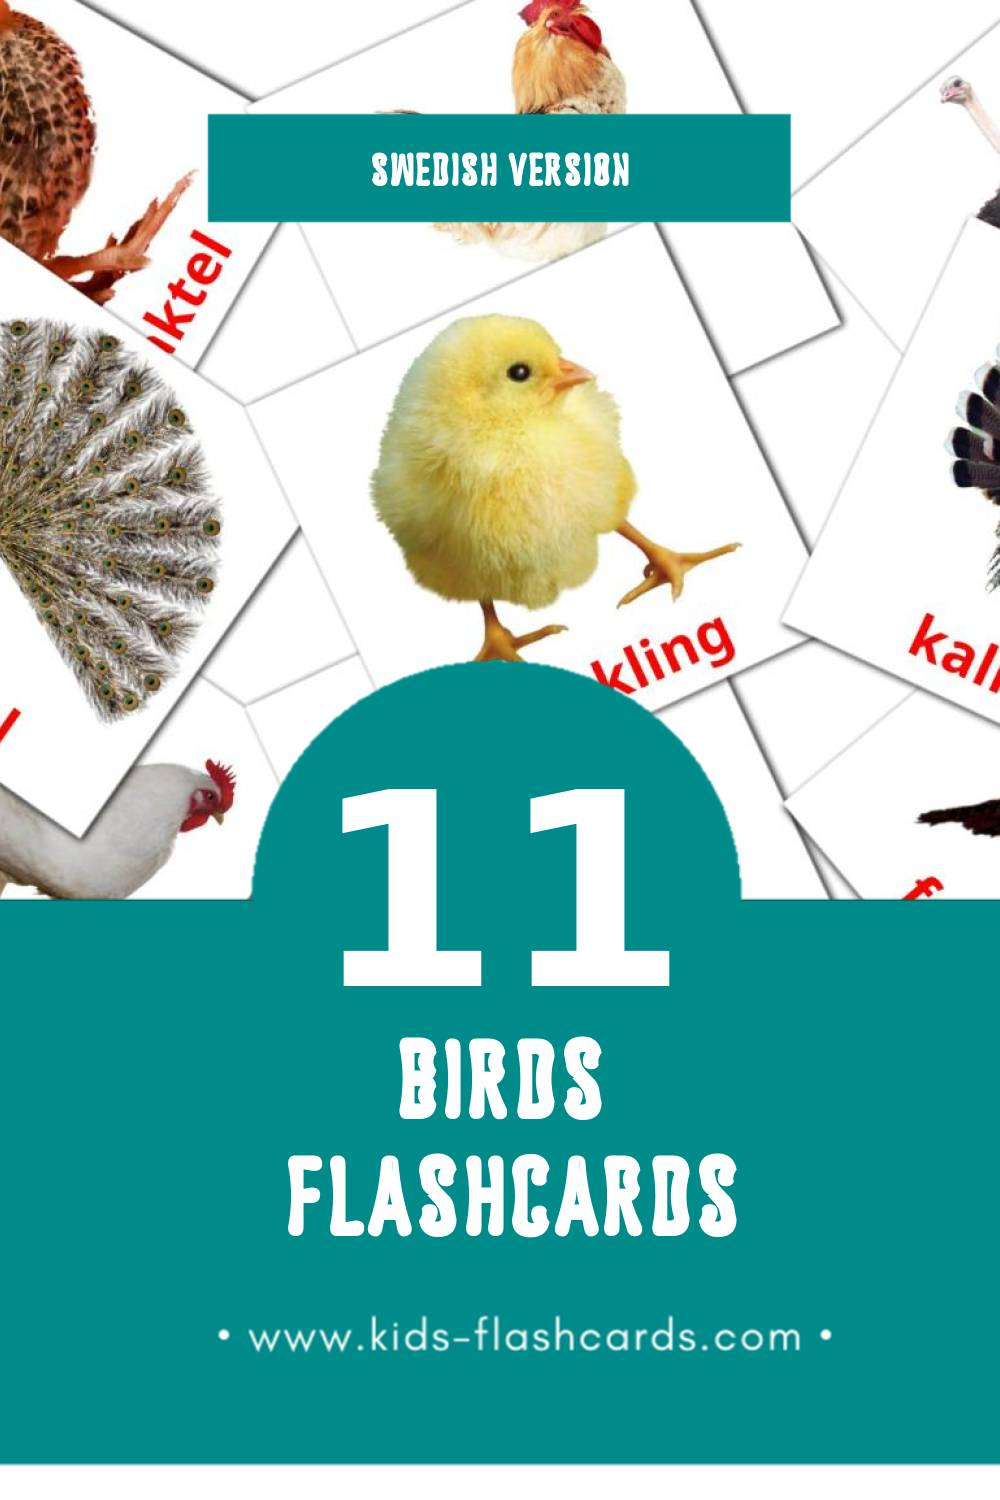 Visual Fåglar Flashcards for Toddlers (11 cards in Swedish)